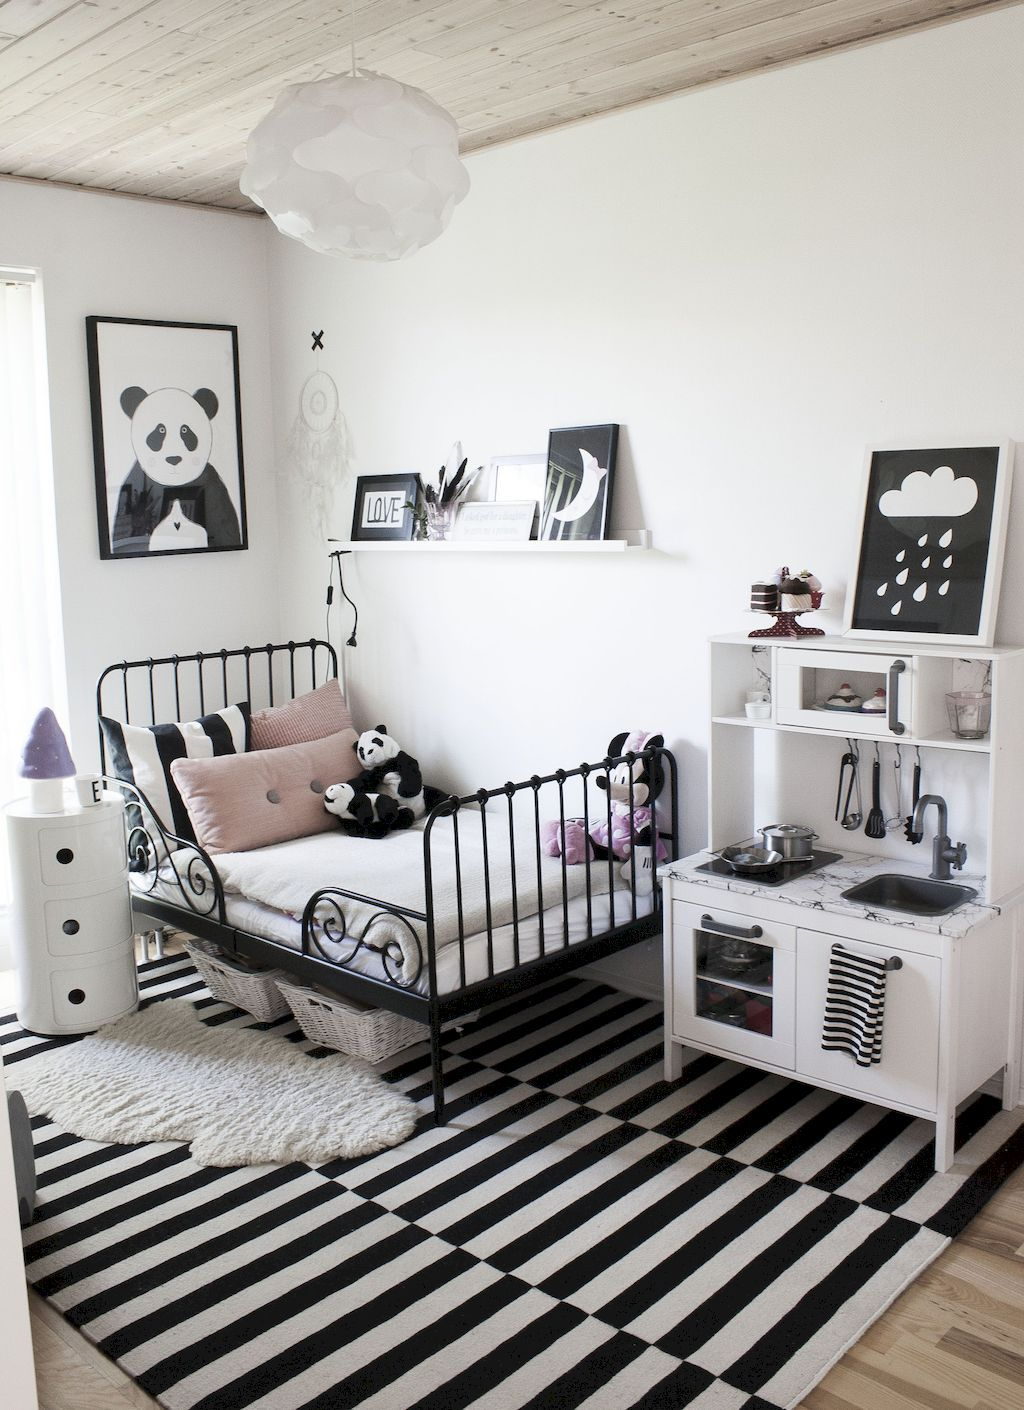 Pin by alycia herrera on interior design white kids room - White bedroom furniture for girl ...